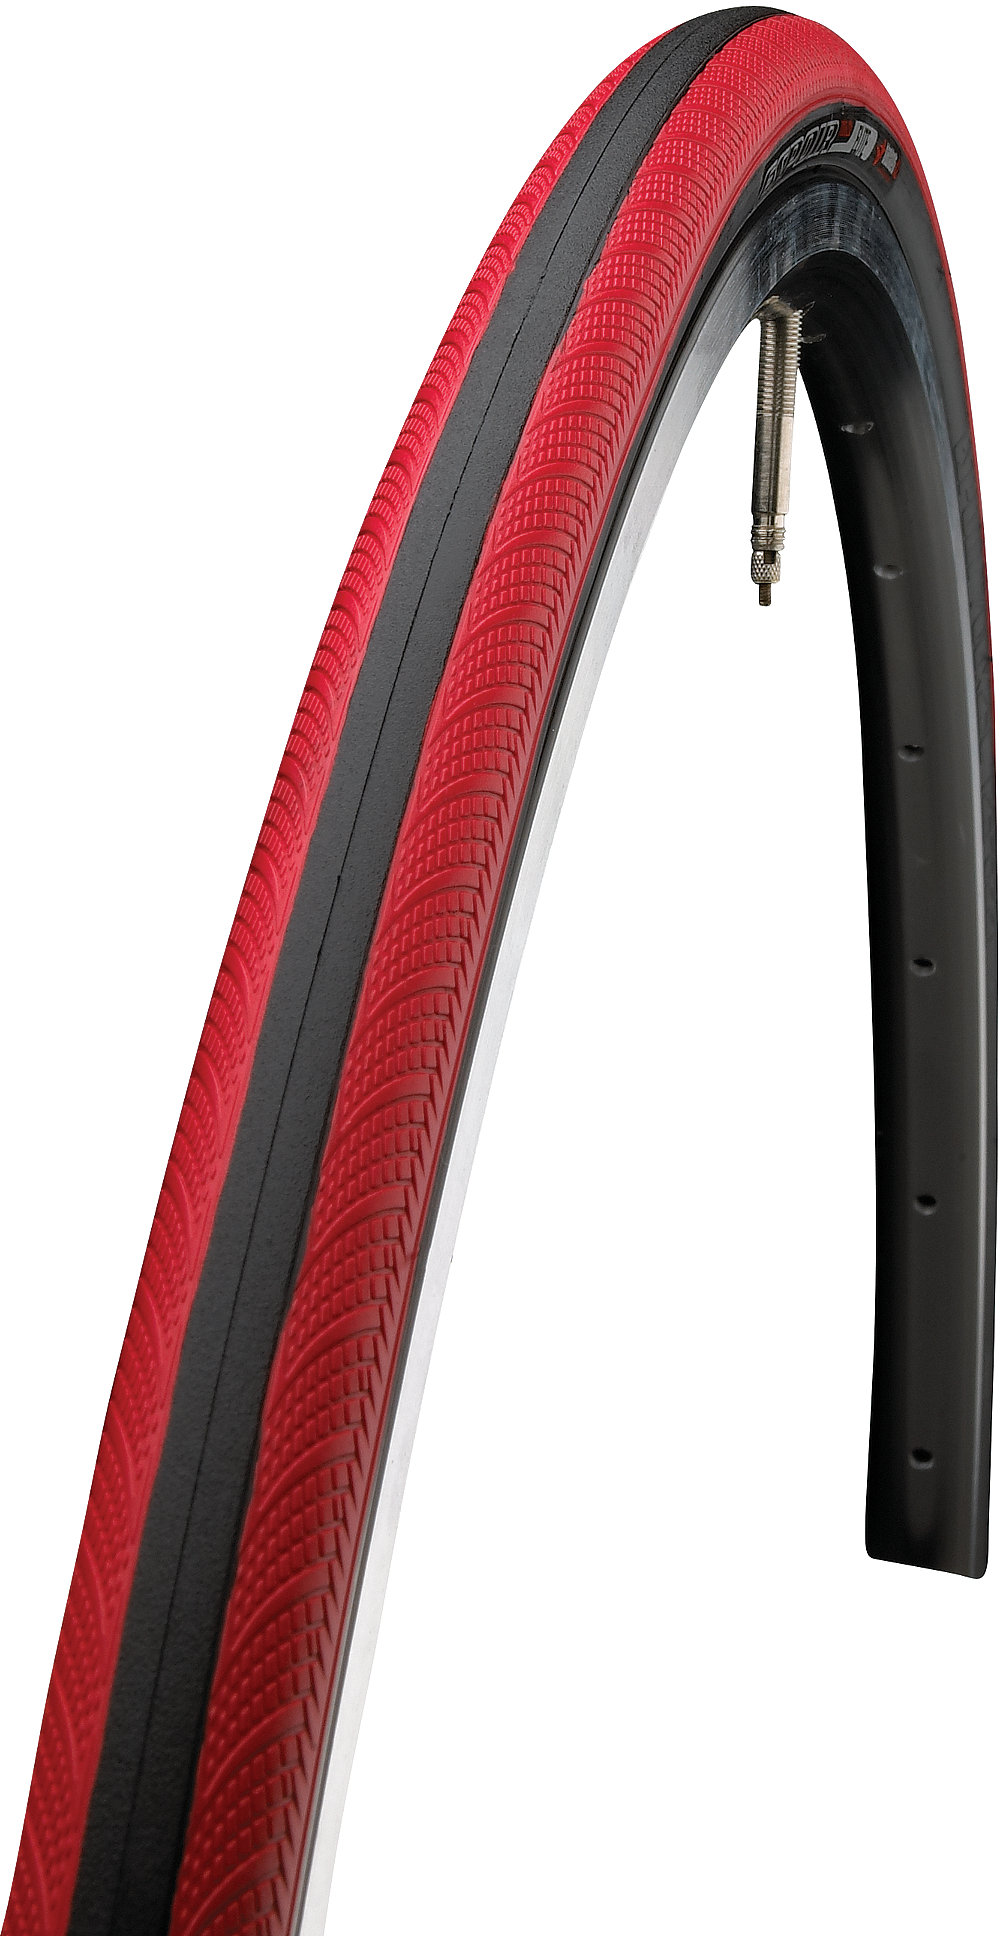 SPECIALIZED ESPOIR ELITE TIRE BLK/RED 700X23C - Alpha Bikes